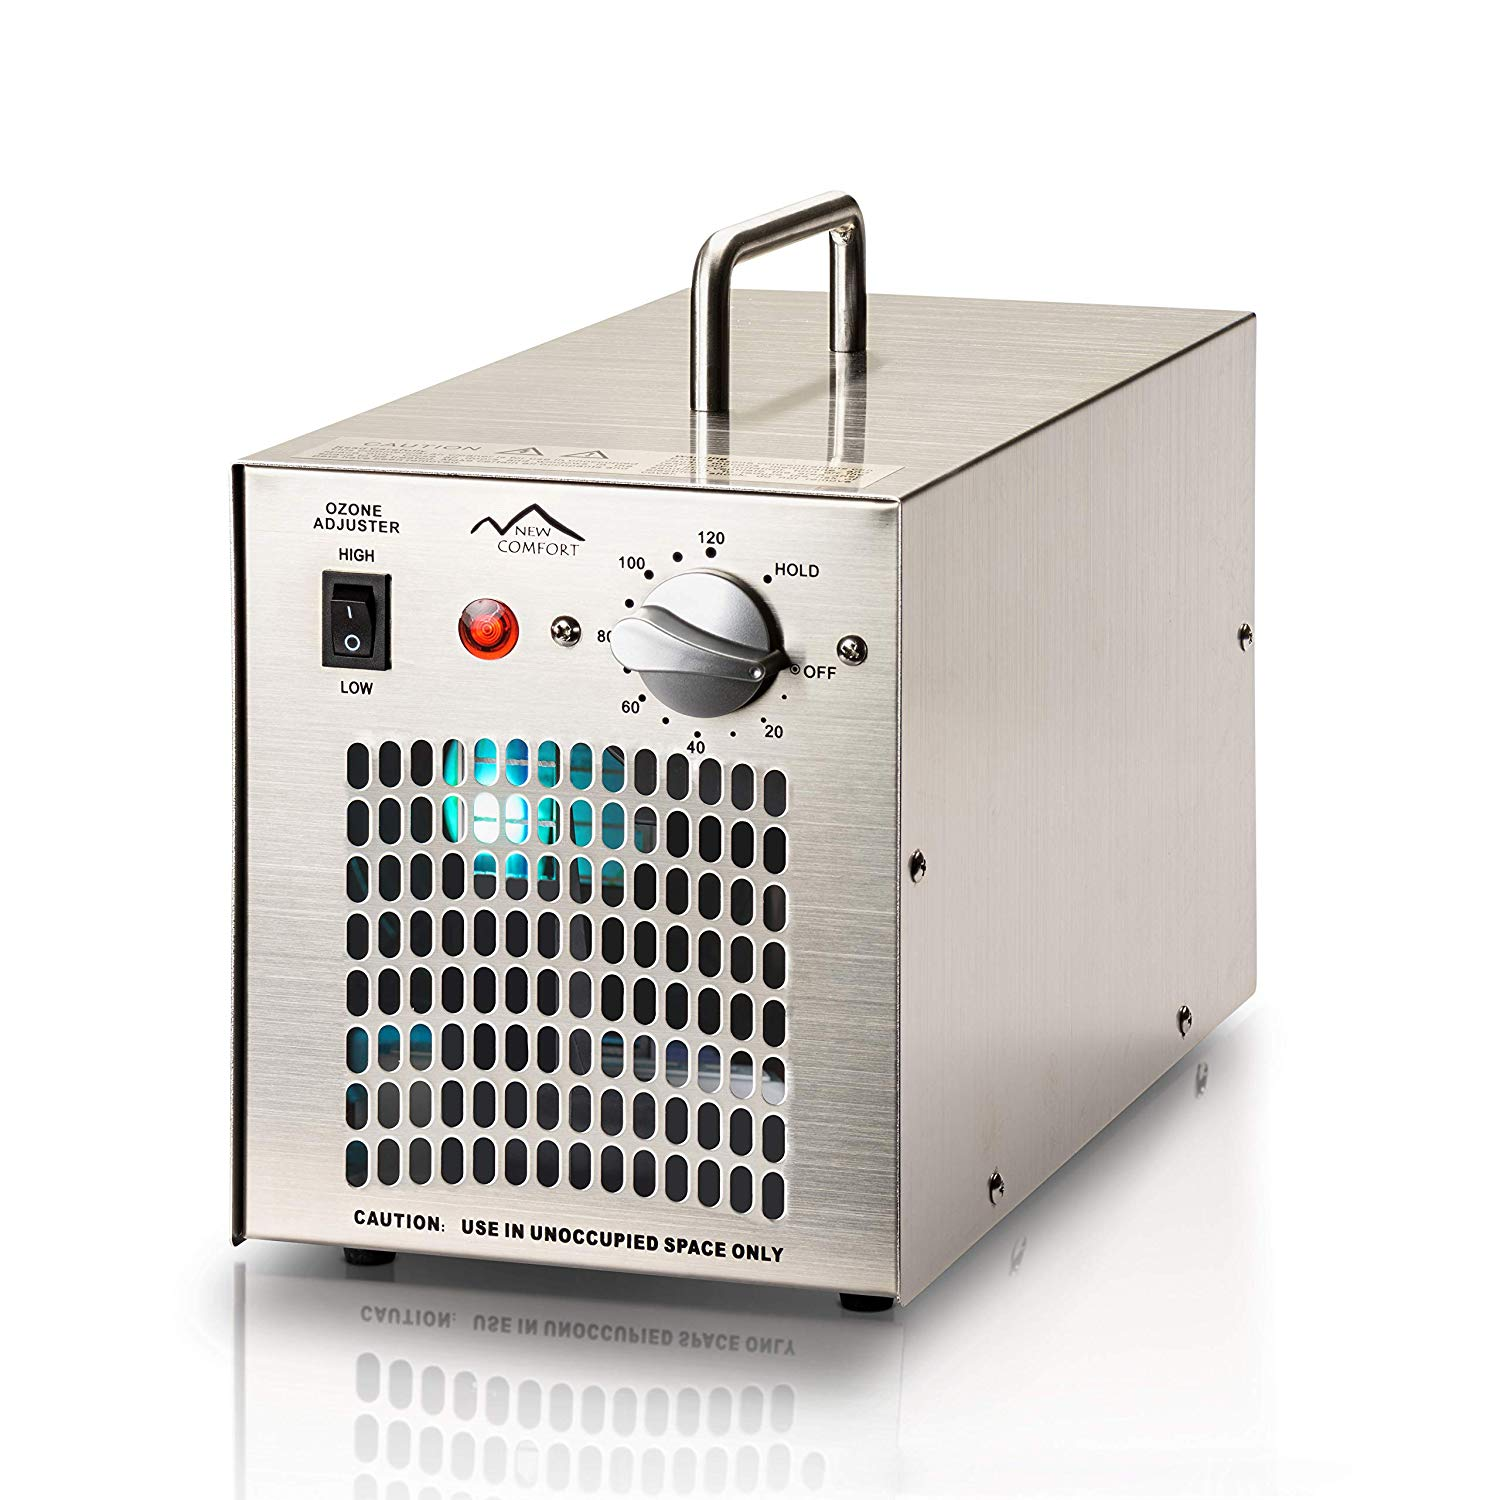 New Comfort Commercial Ozone Generator